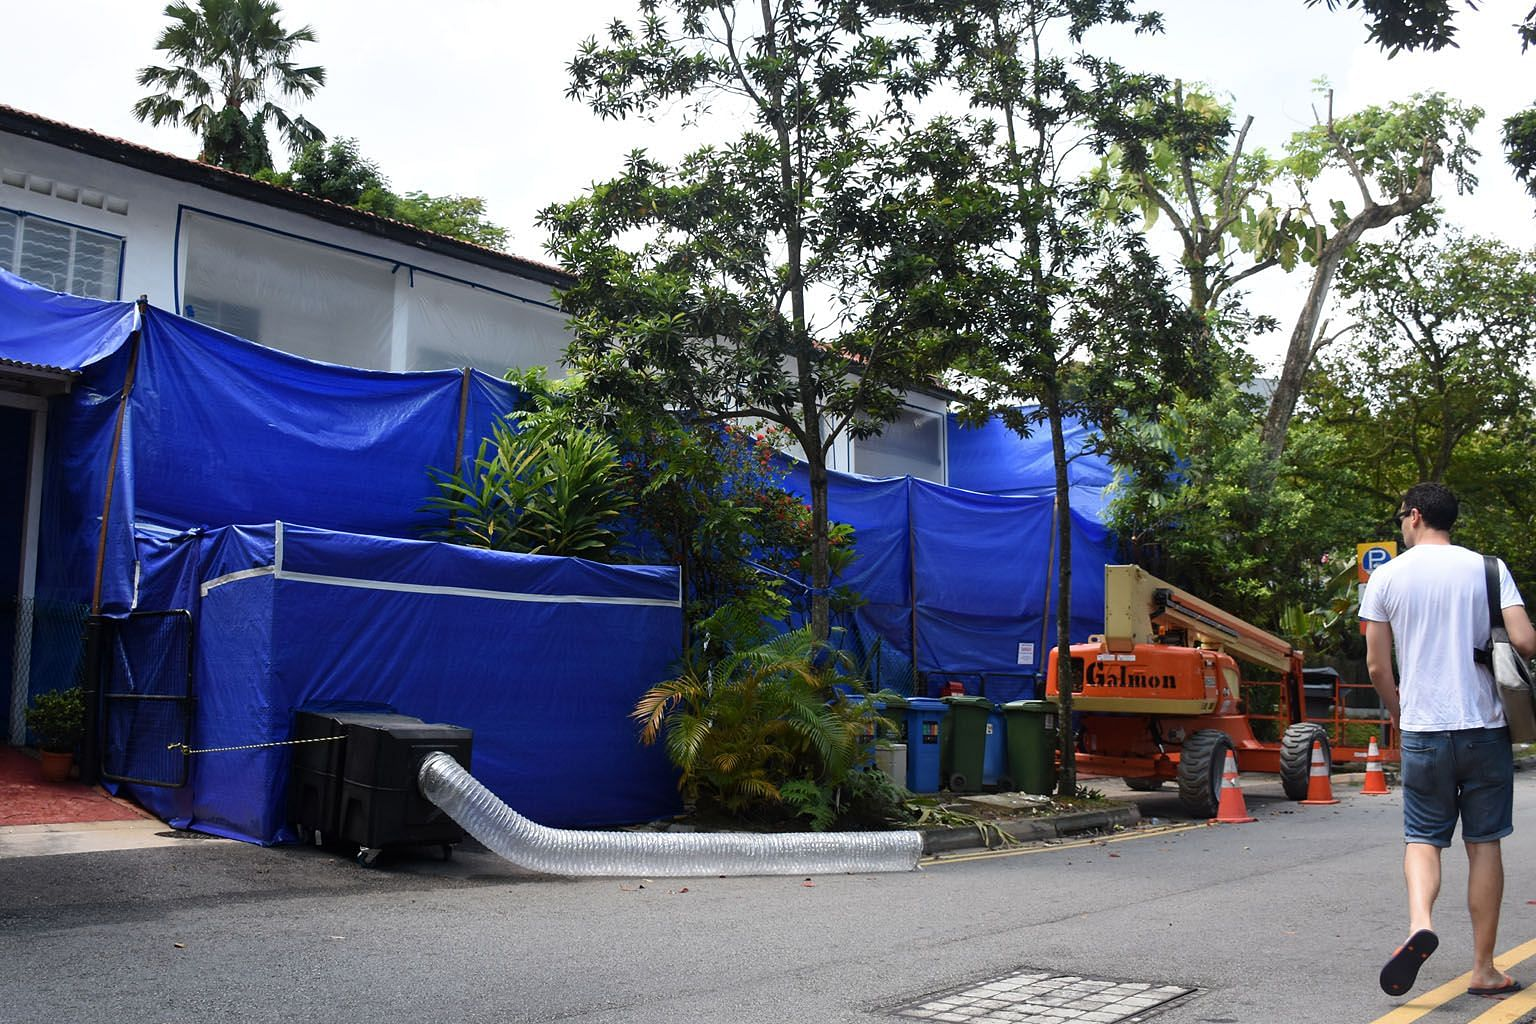 Three houses in Jalan Hitam Manis were enclosed in sheets for asbestos removal when The Straits Times visited Chip Bee Gardens last week.